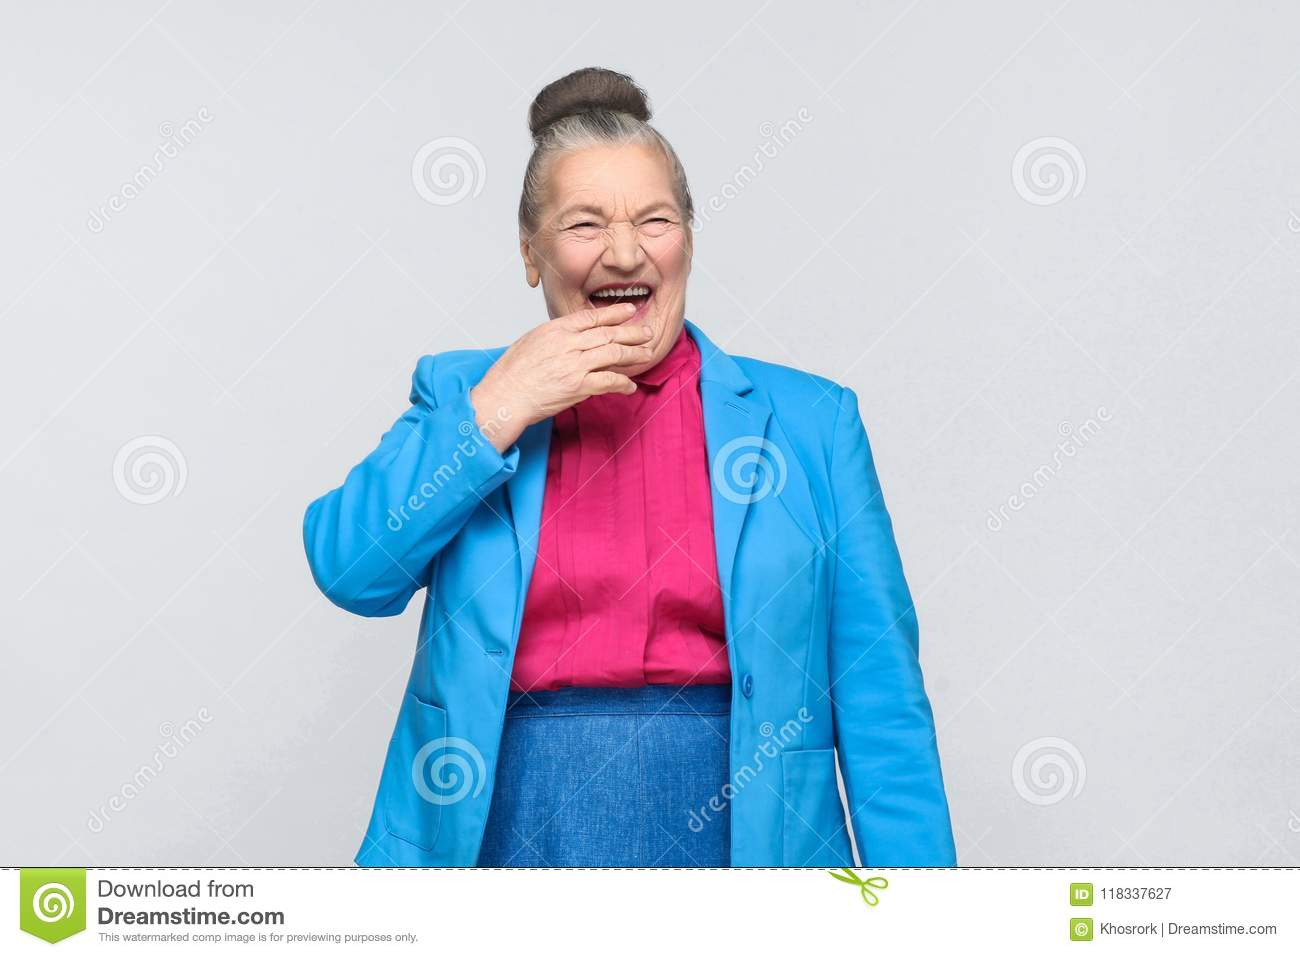 Funny aged woman laugh